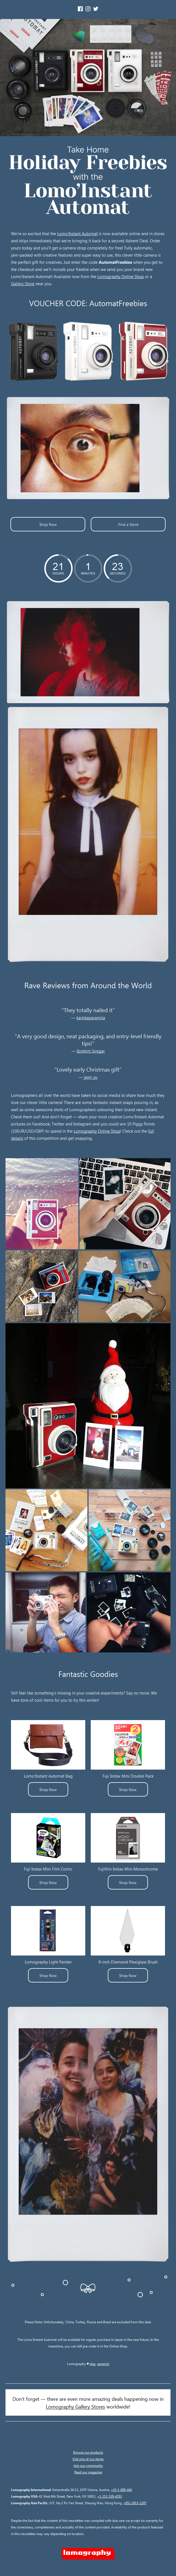 Today's Advent Deal — Free Camera Strap with Every Lomo'Instant Automat!